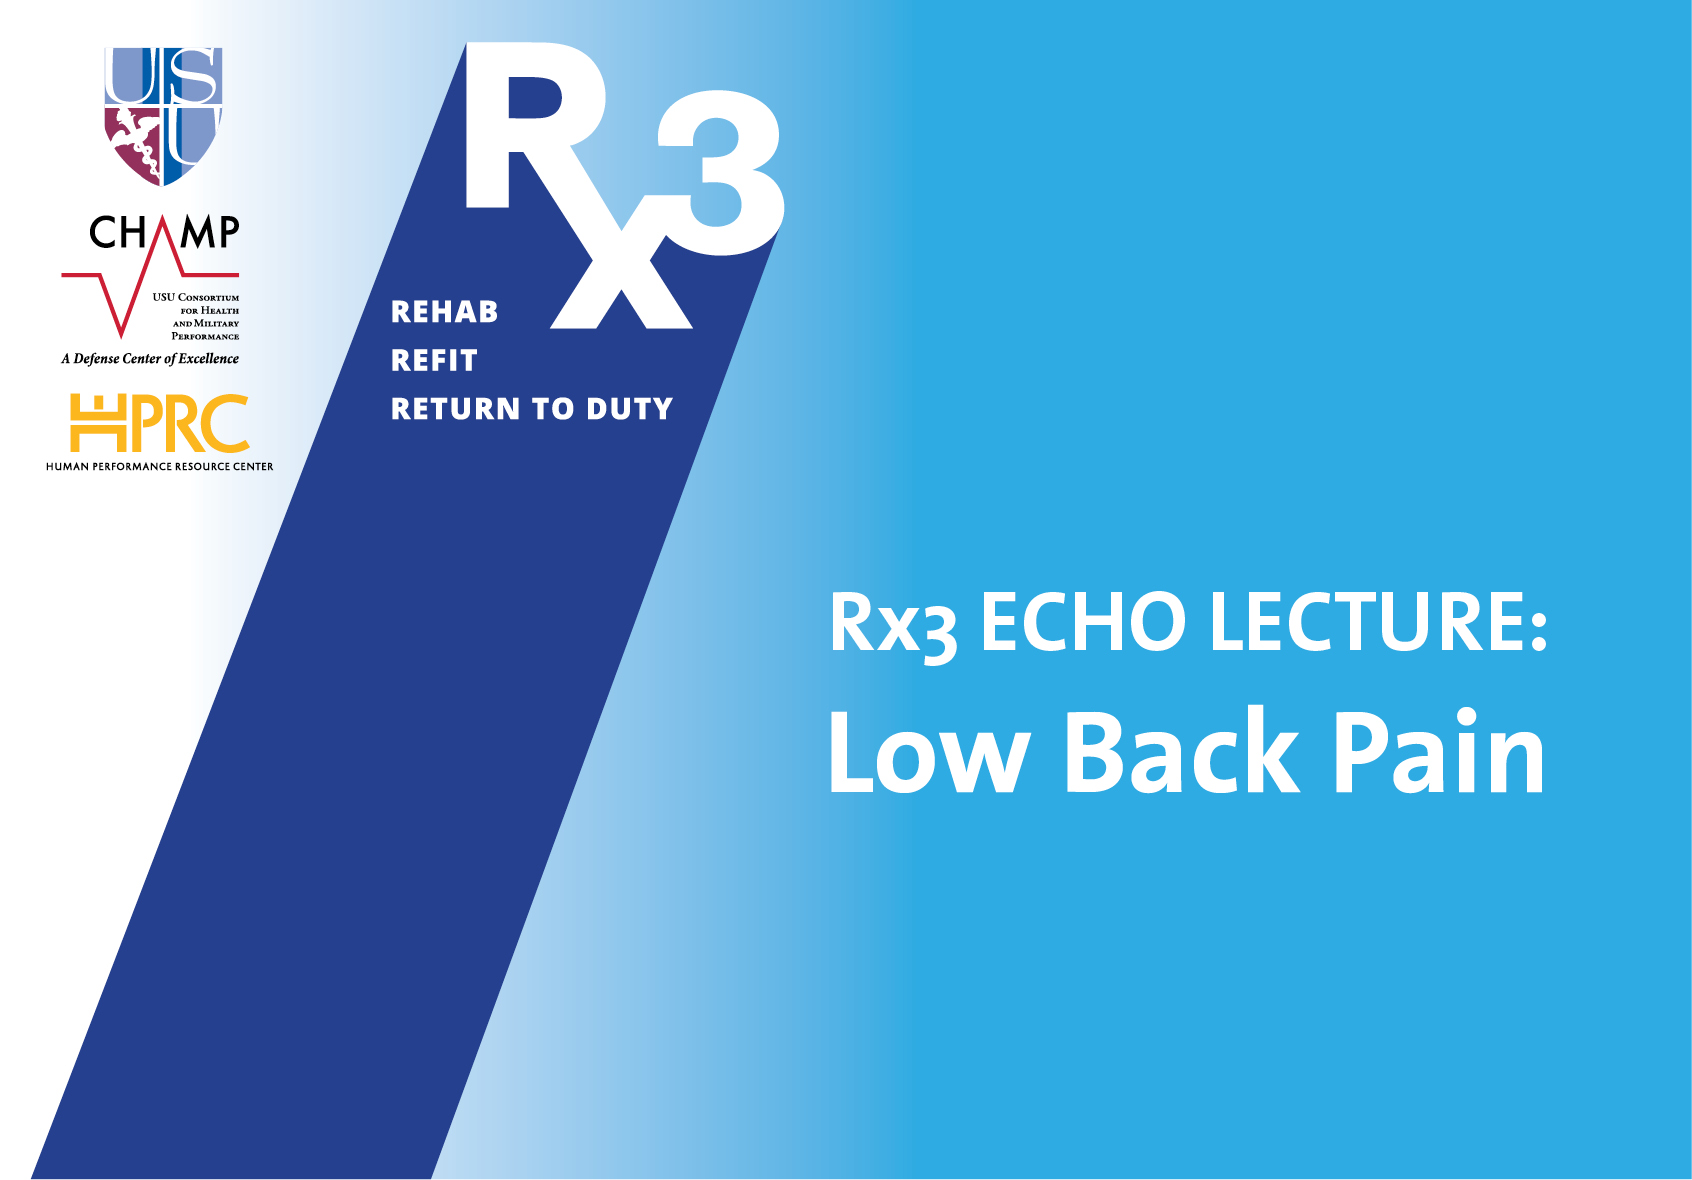 USU CHAMP HPRC Rx3 ECHO LECTURE  Low Back Pain